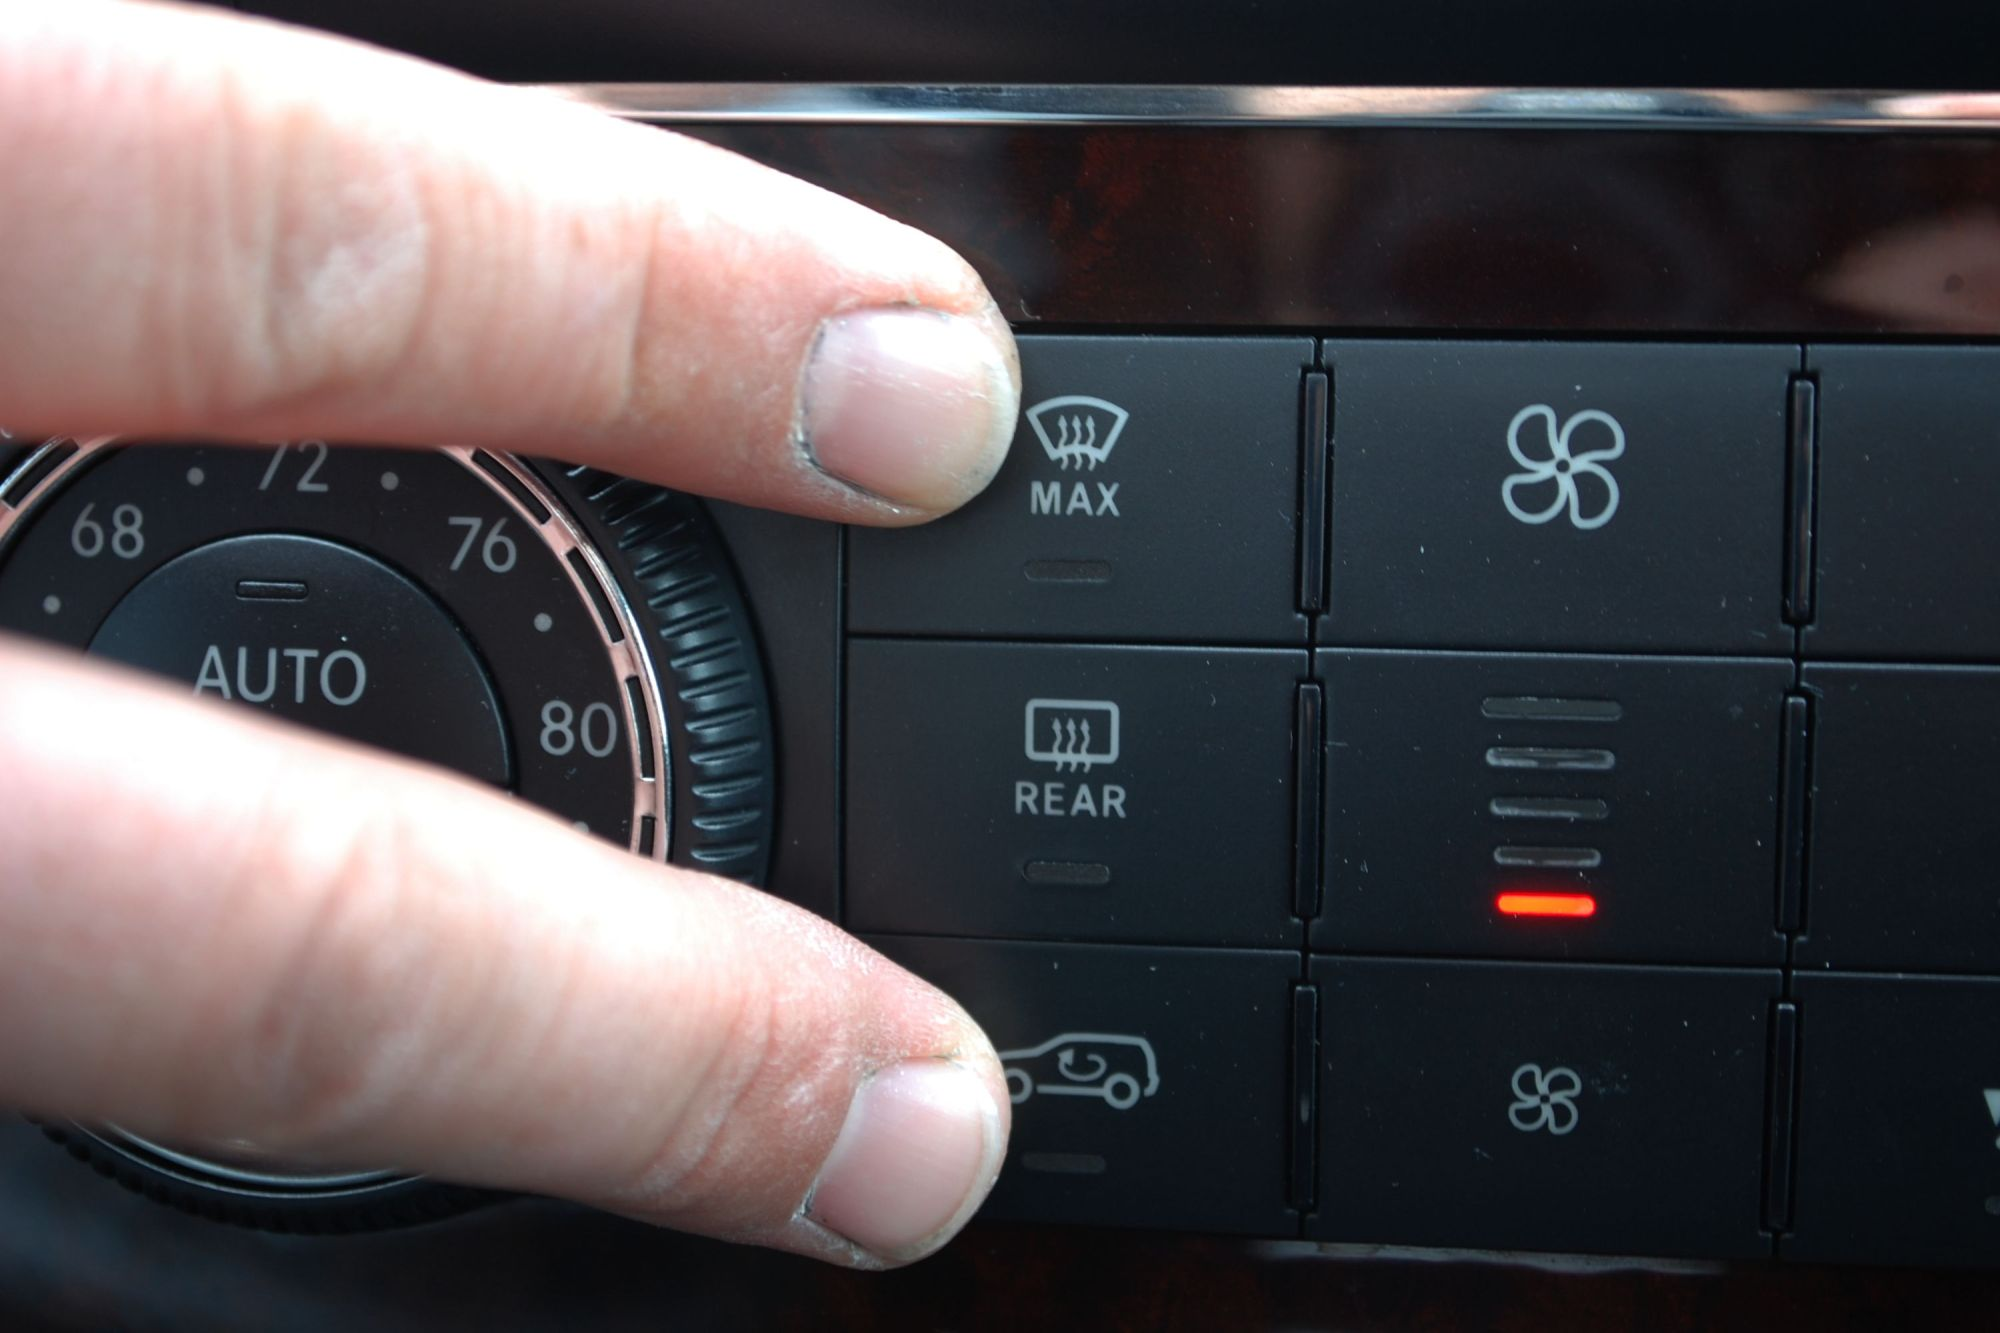 hight resolution of press and hold the defrost and recirculated air buttons simultaneously the defrost button has three lines going through it while the recirculated air